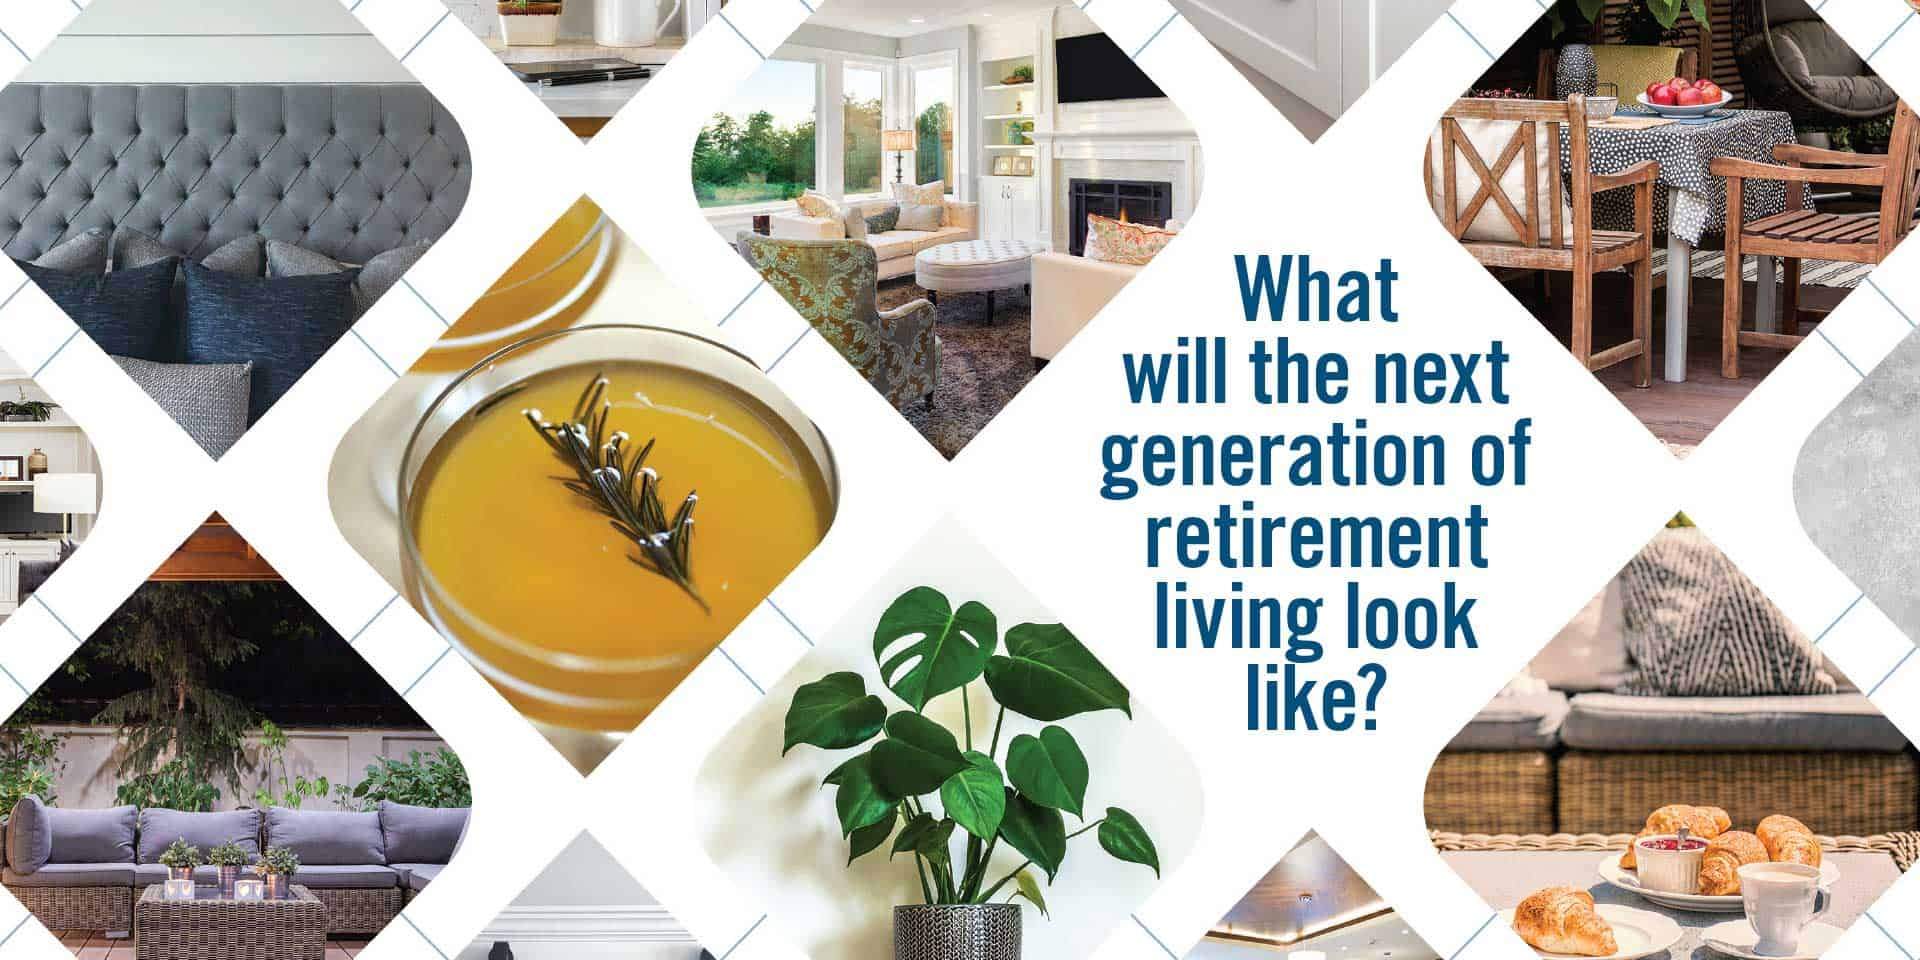 What will the next generation of retirement living look like?